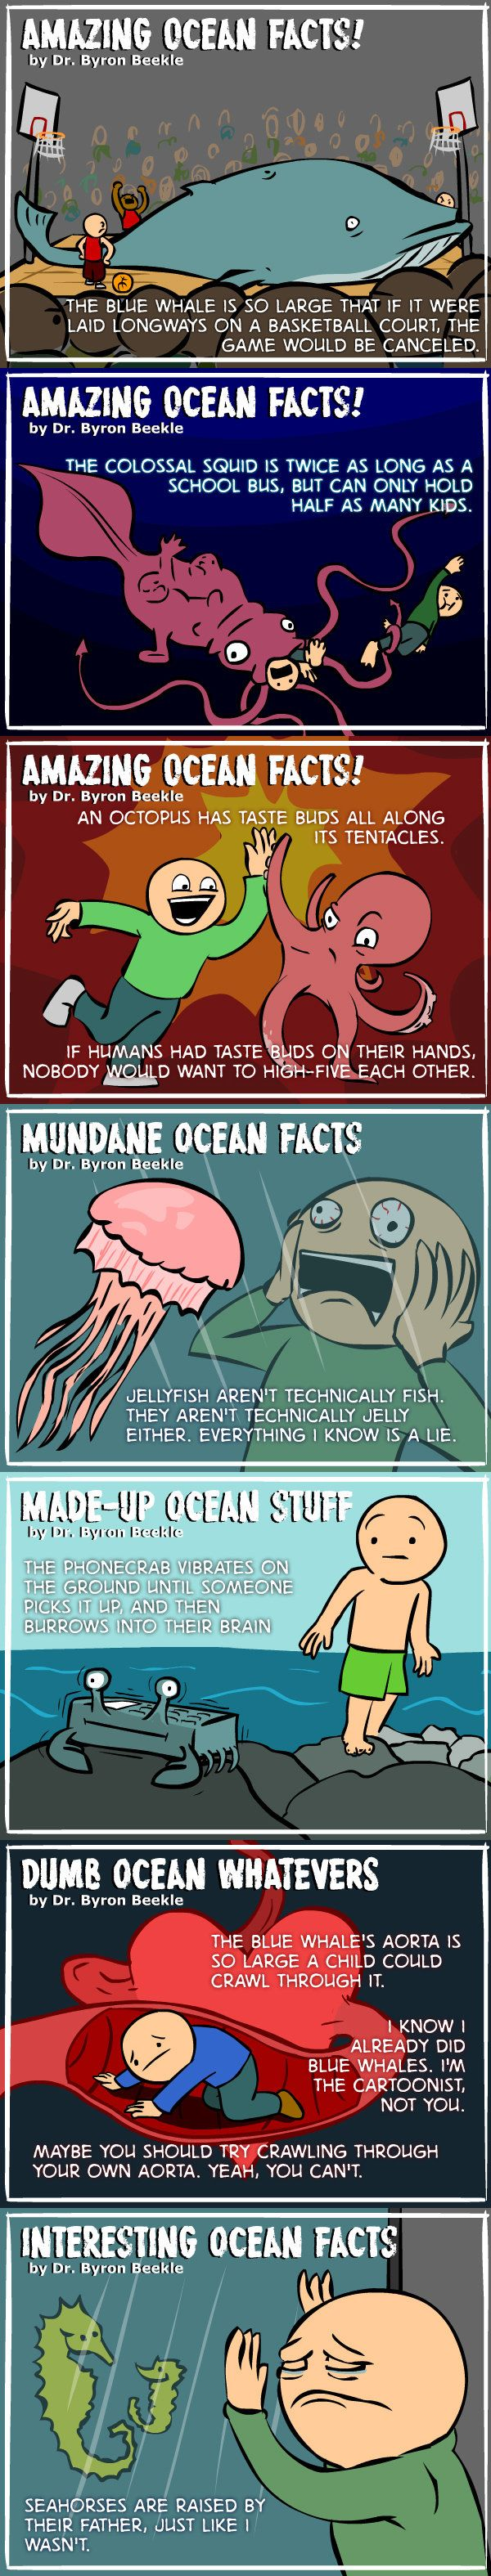 Real Ocean Facts. Broaden your minds!